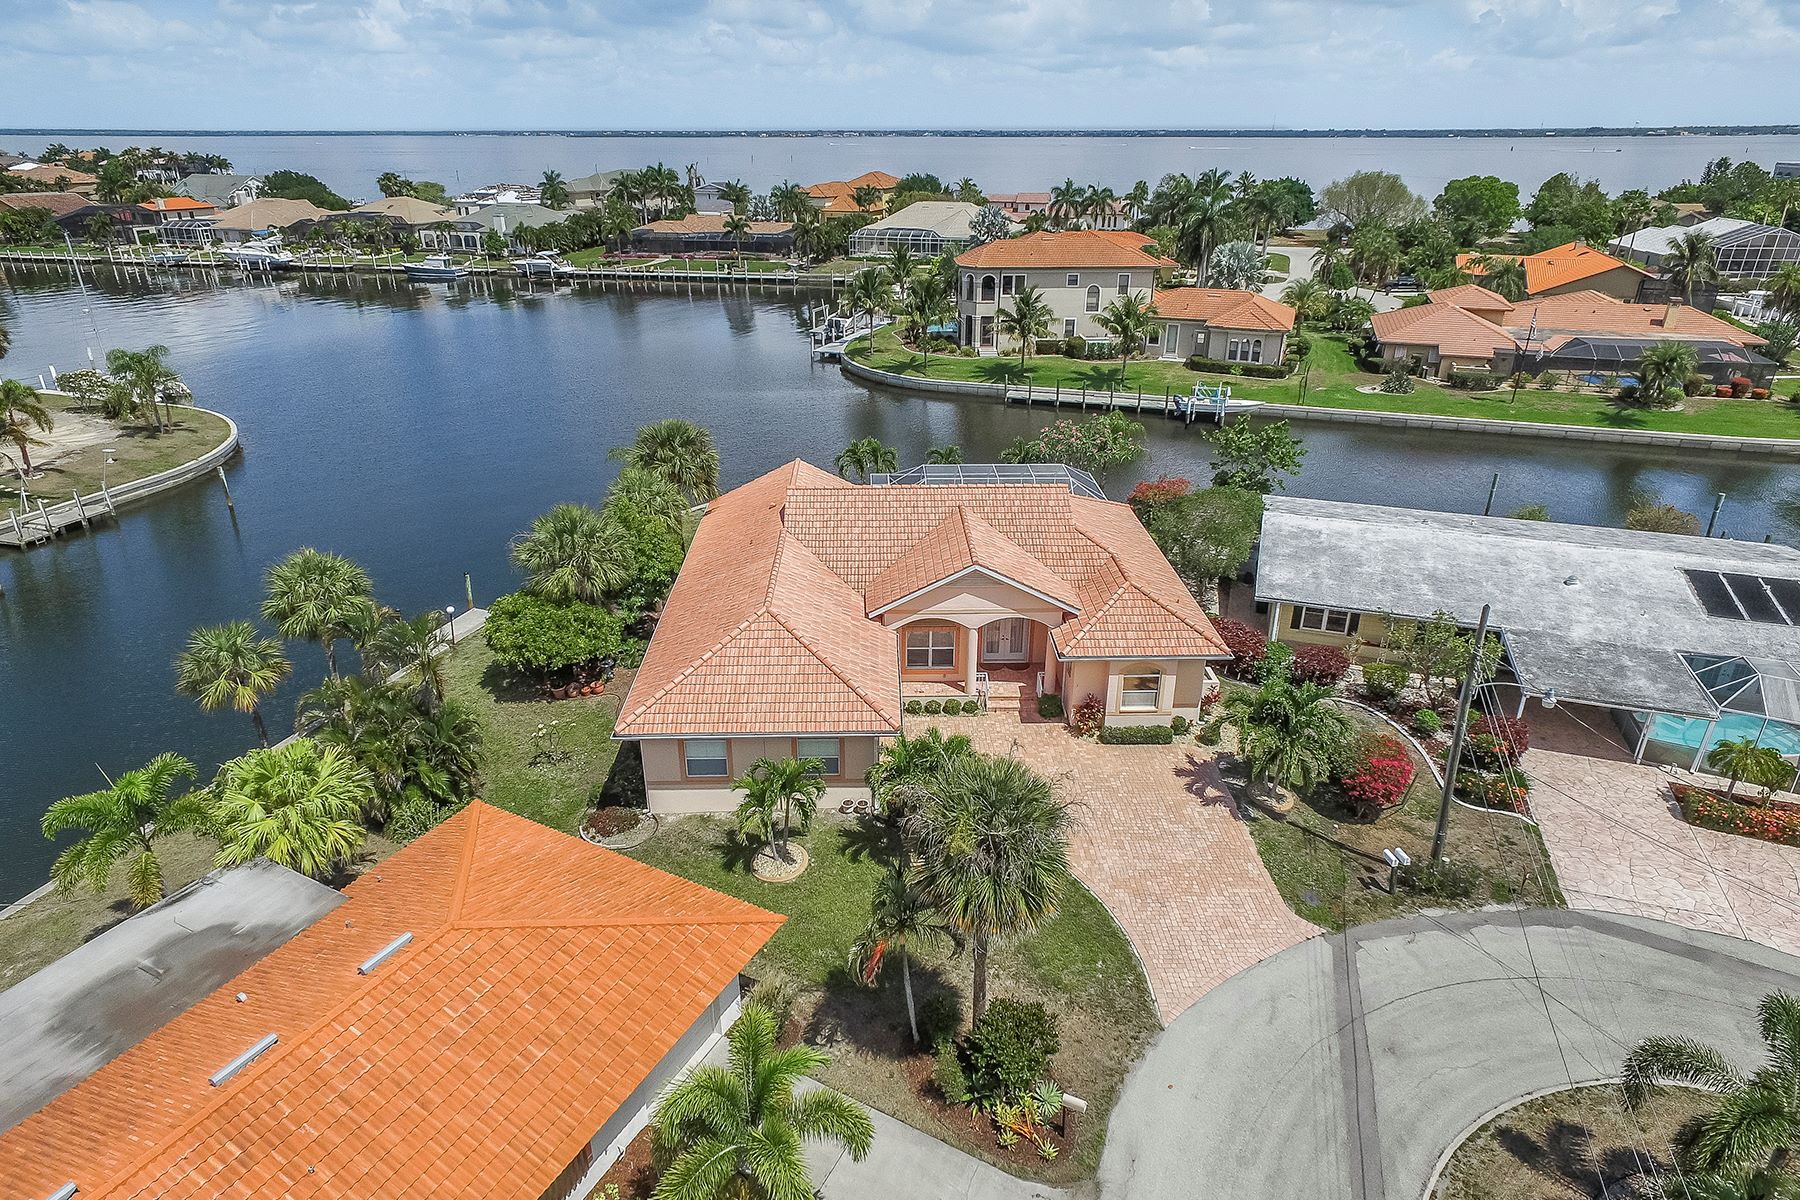 House for Sale at PUNTA GORDA ISLES 111 Maria Ct Punta Gorda, Florida 33950 United States